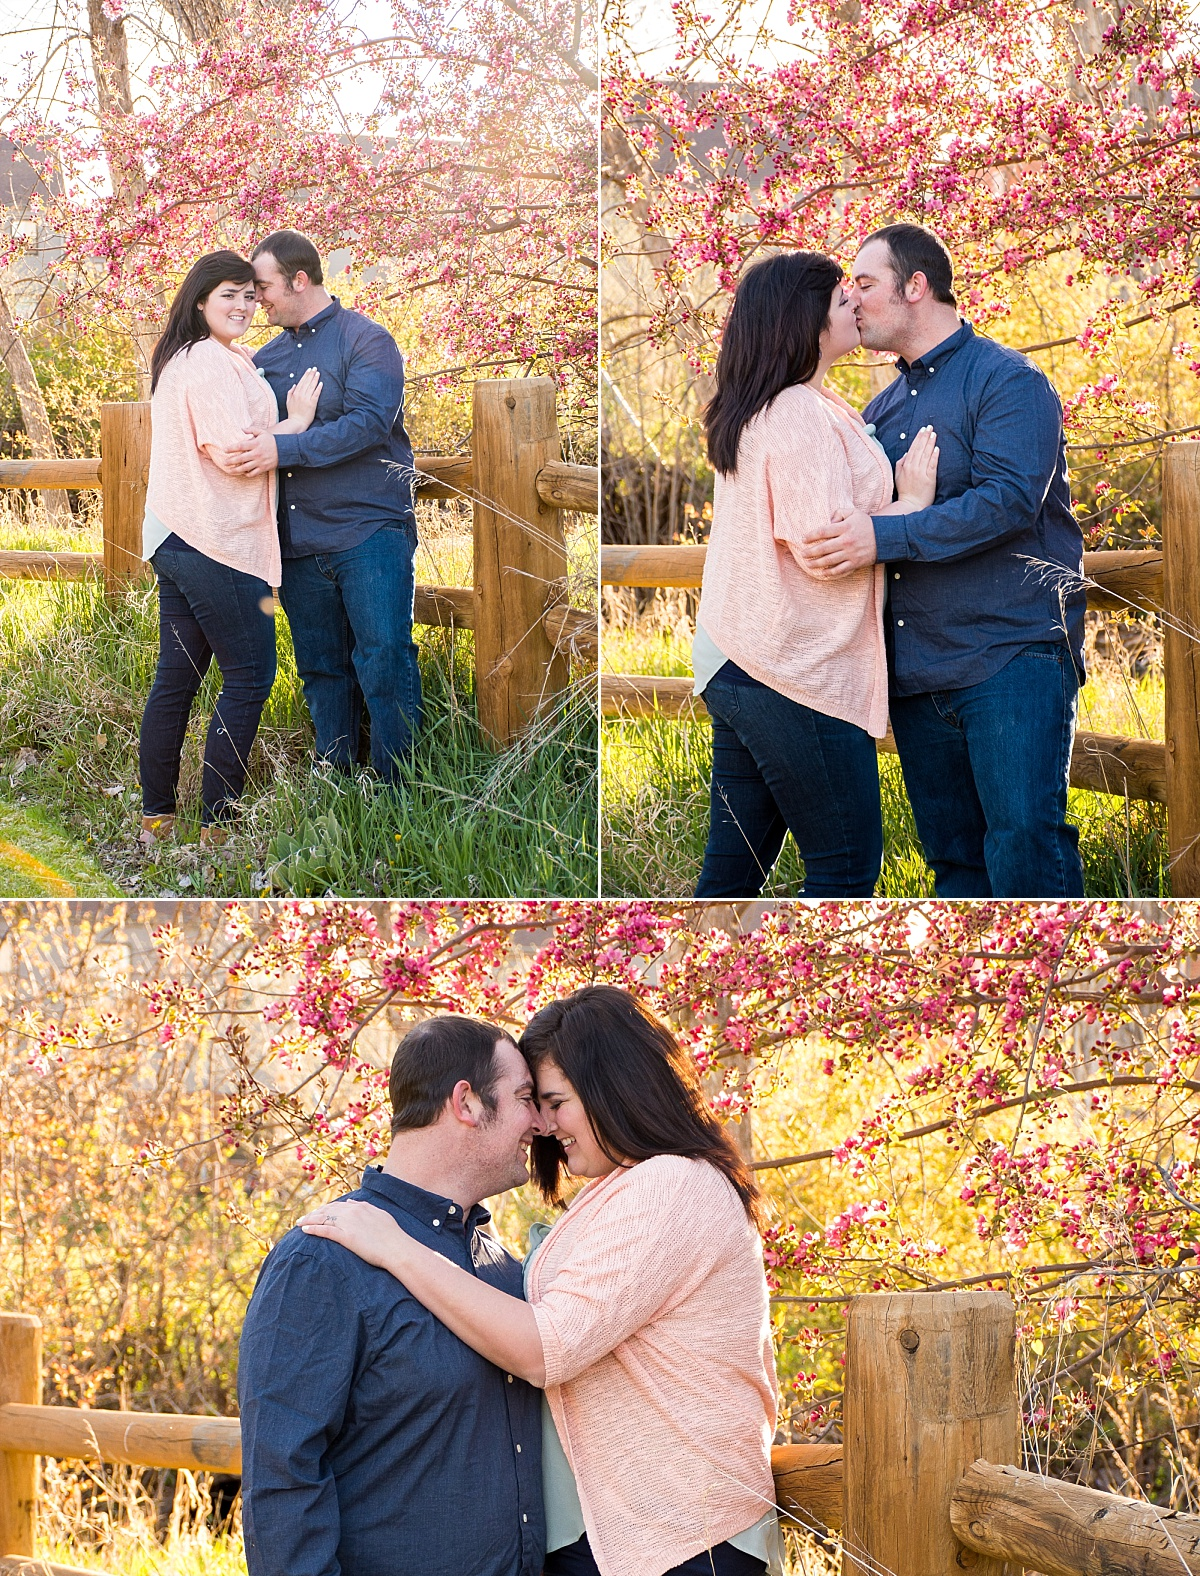 pink spring blossoms outdoor campus west rapid city south dakota engagement photos 1